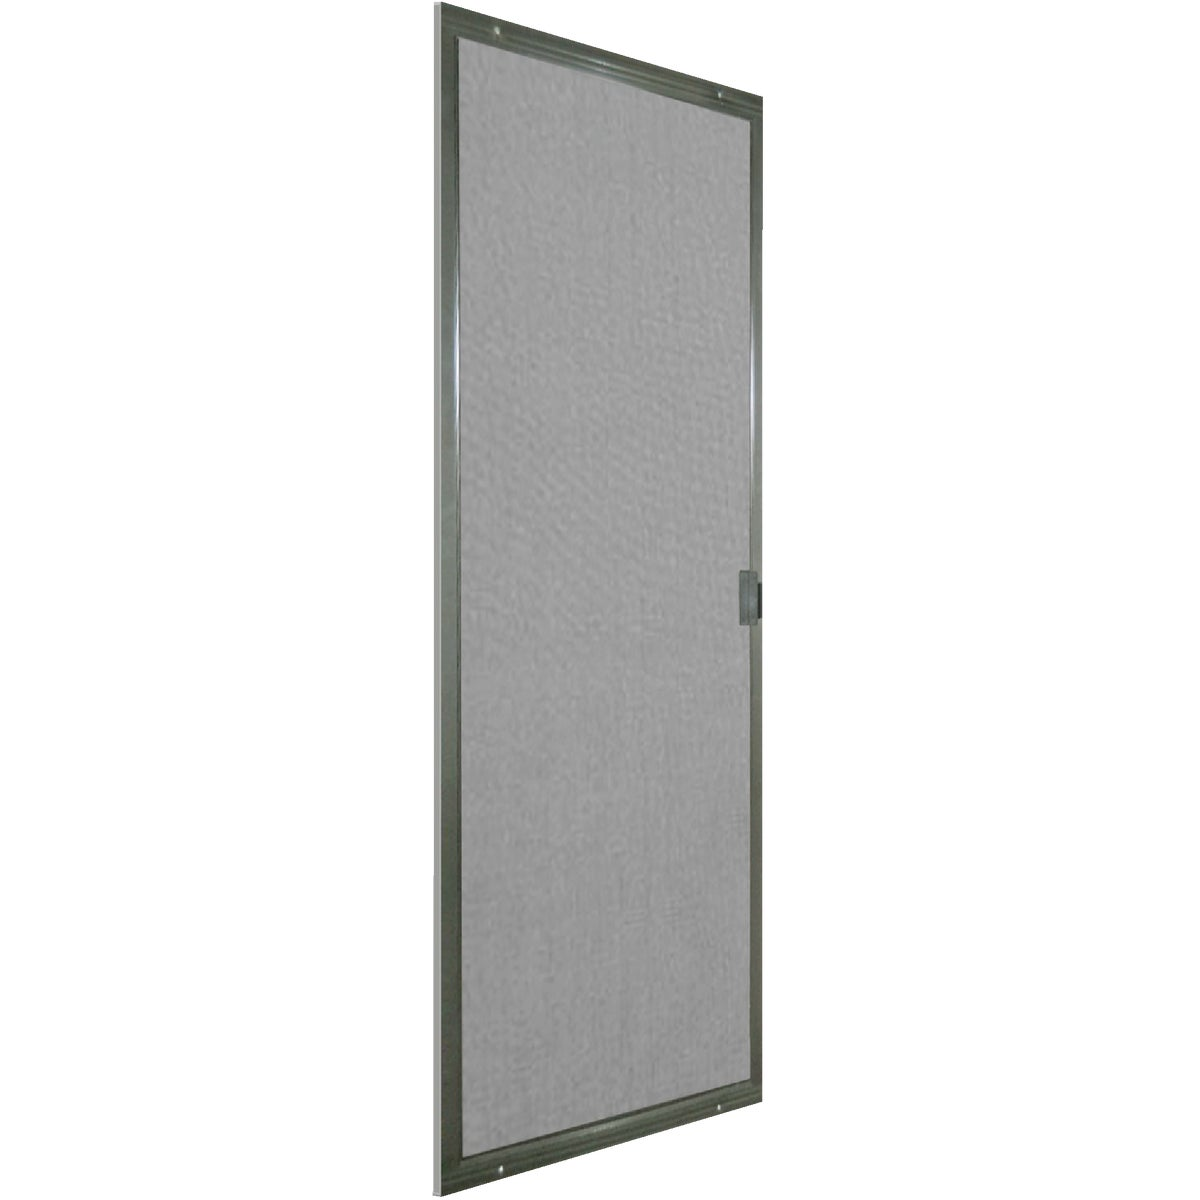 "36"" GRY PATIO SCREEN - PAT36GRY by Screen Tight"